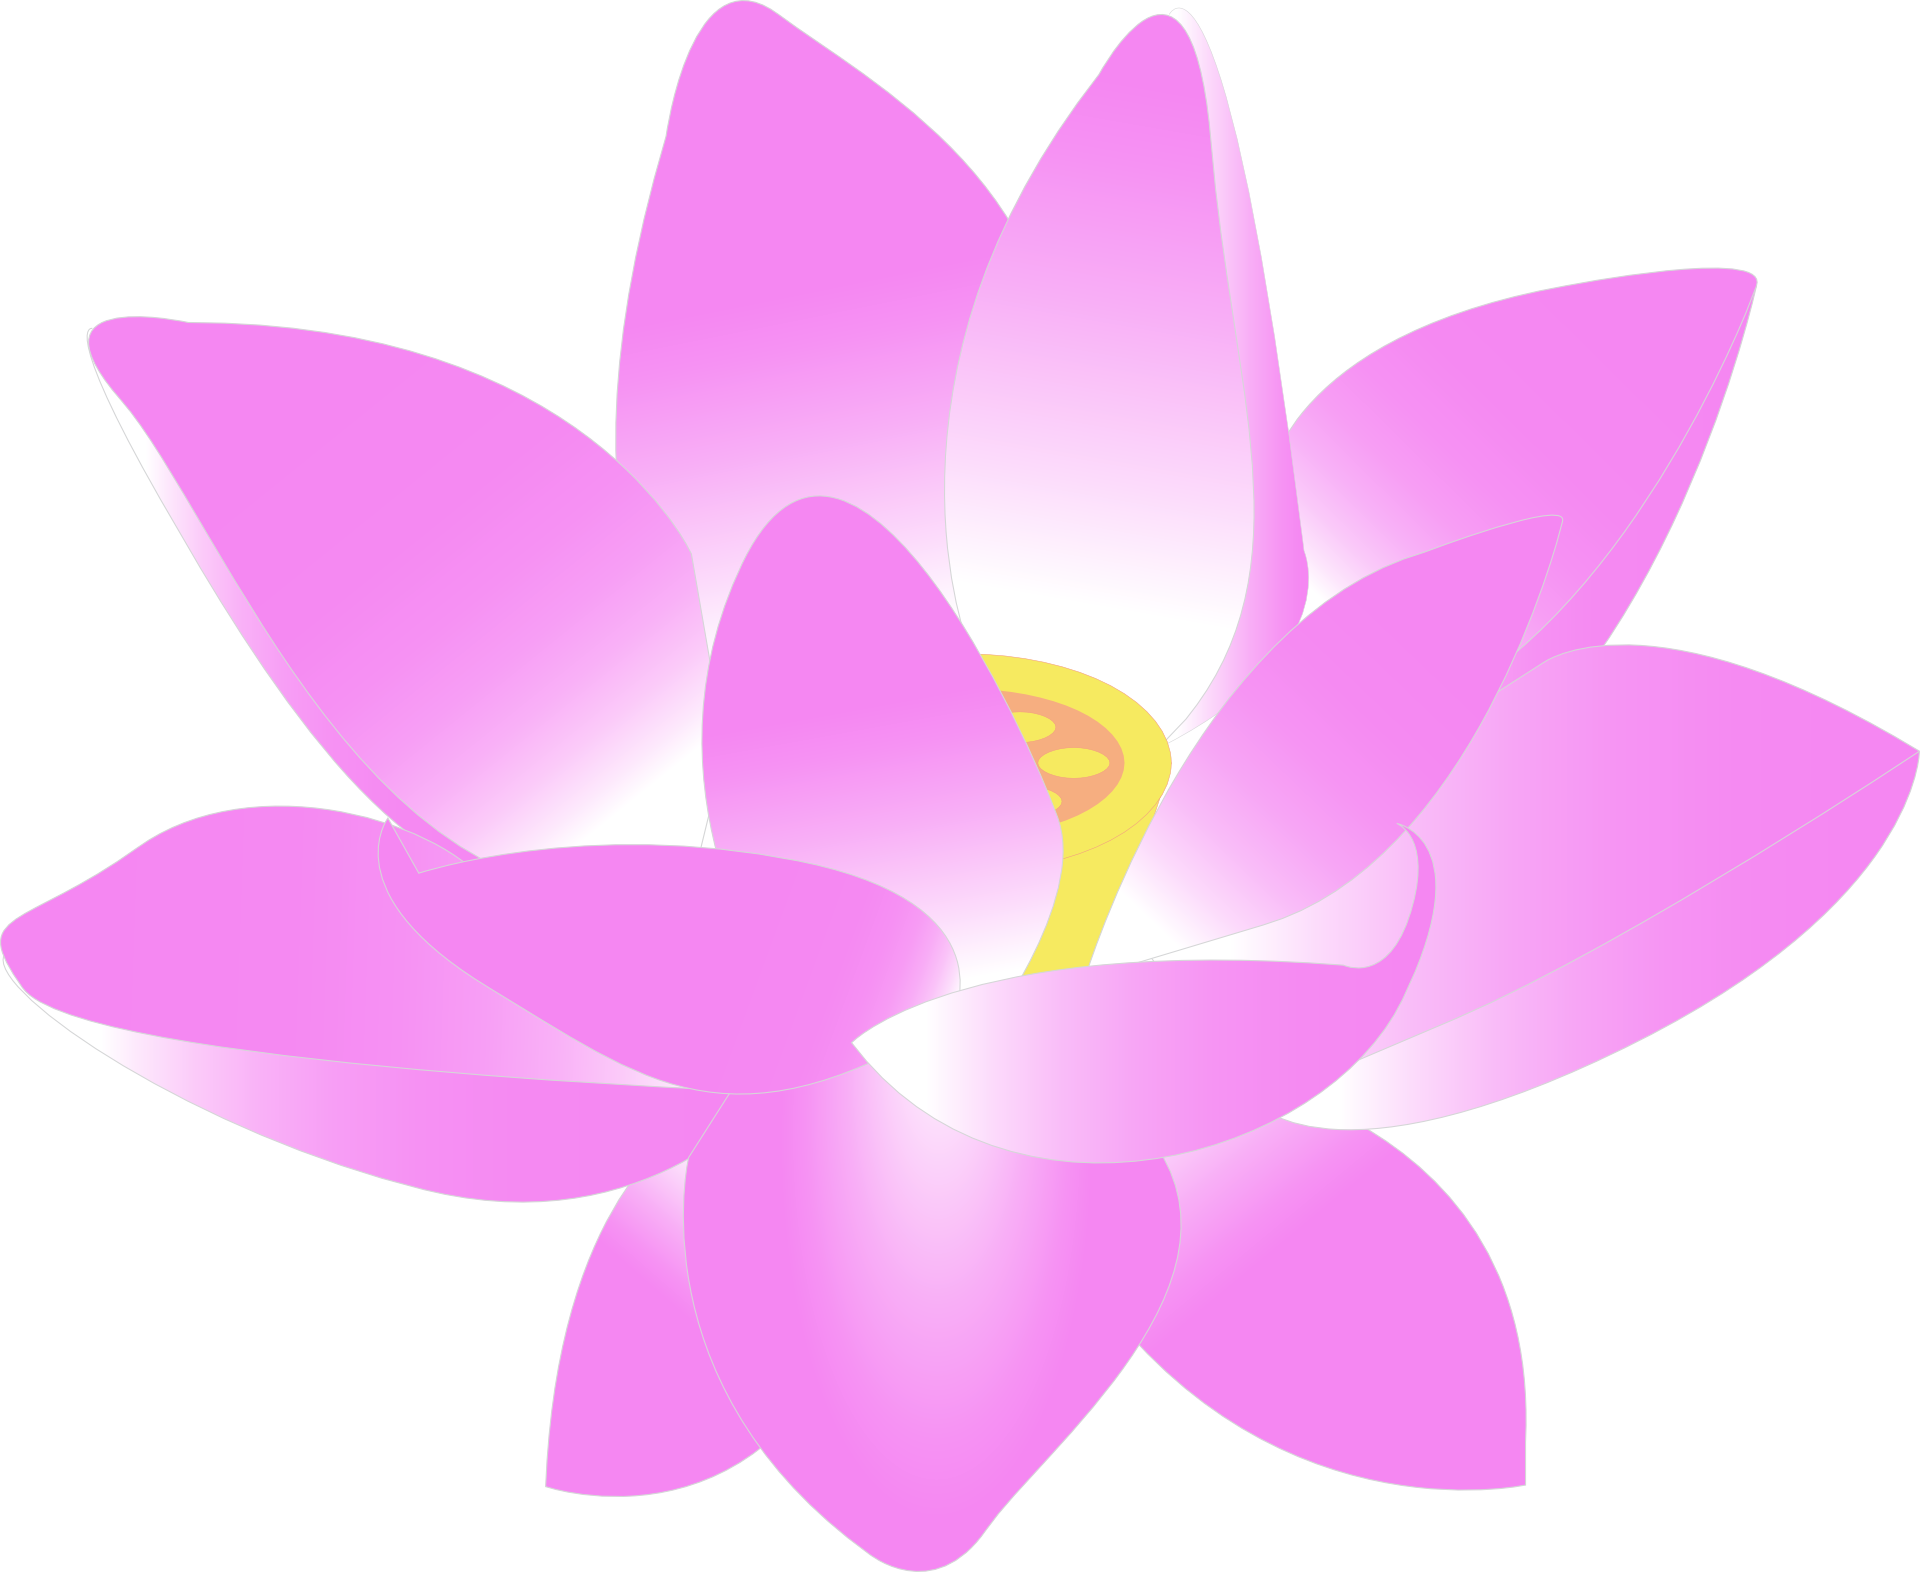 The Lotus Tree - Export Taoist Practices